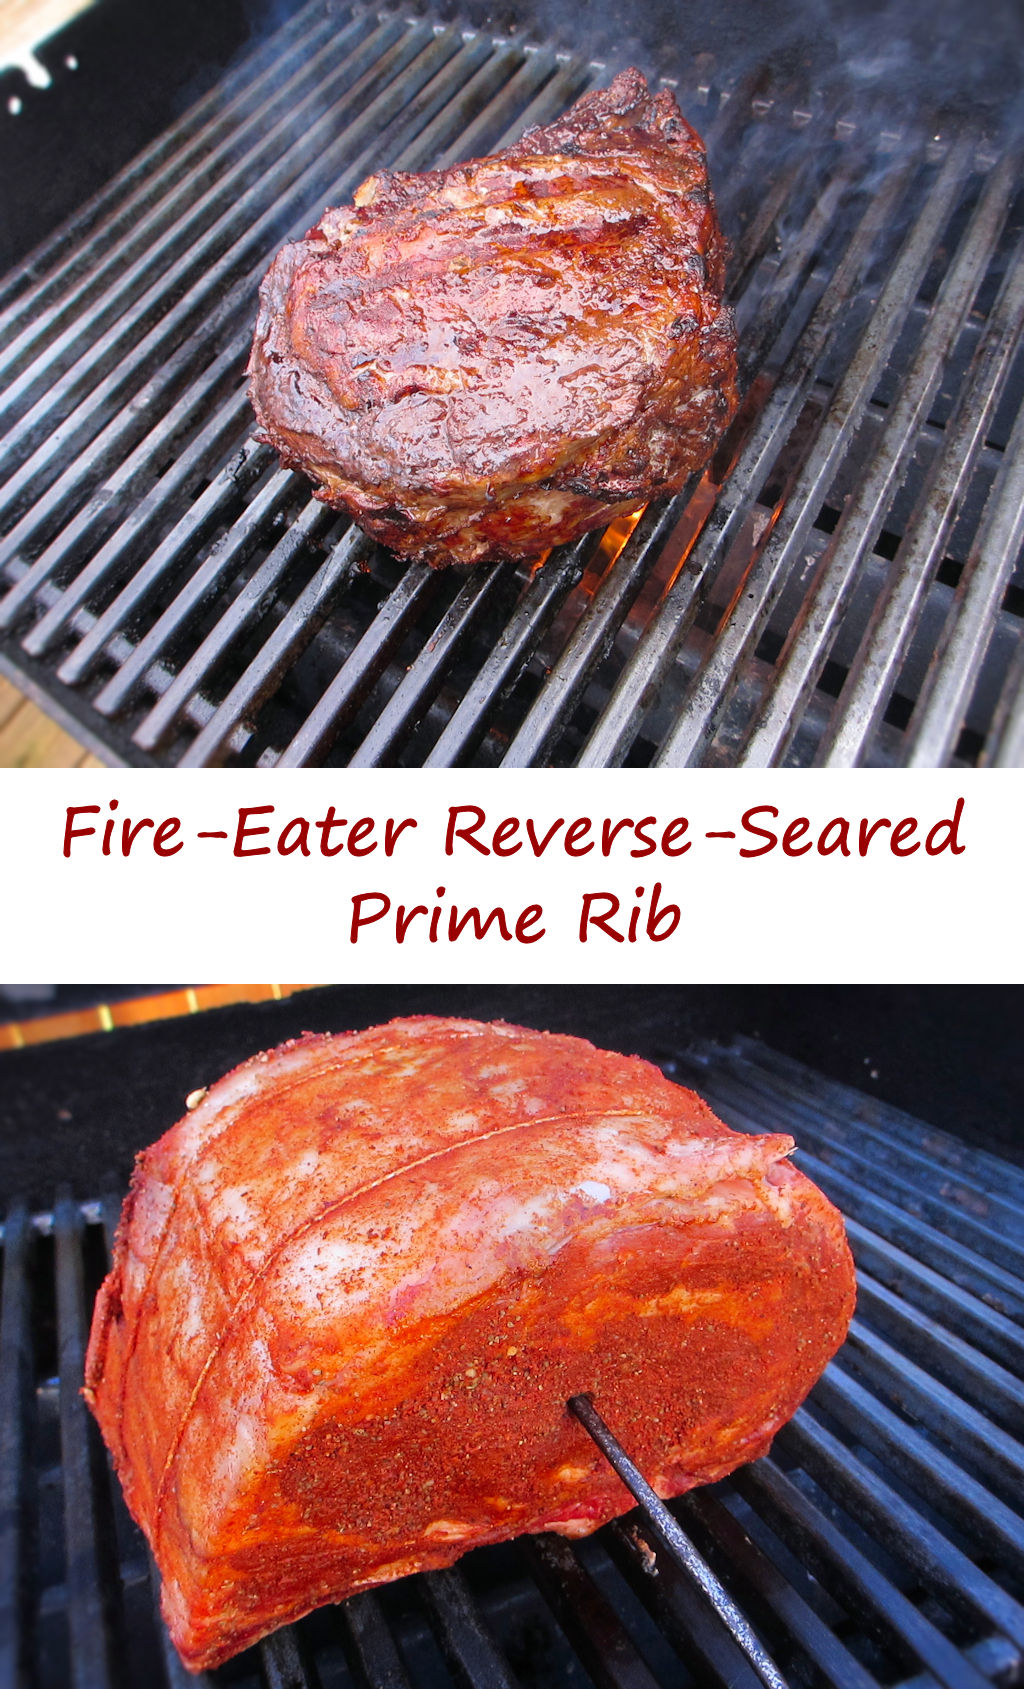 Fire-Eater Reverse-Seared Prime Rib